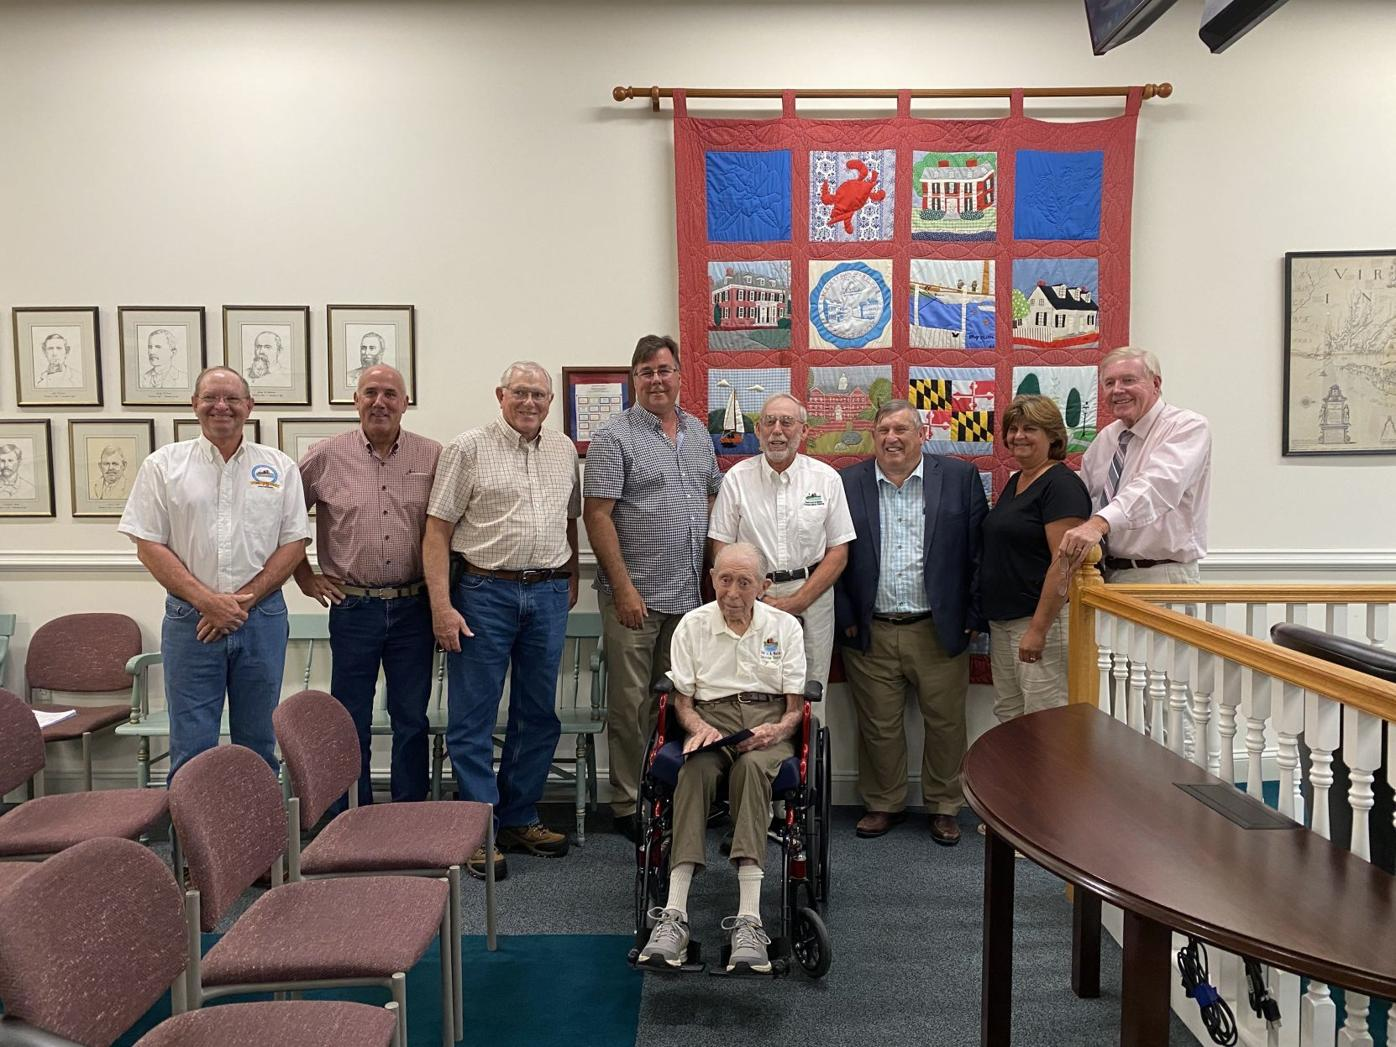 Westcott recognized for 52 years of service